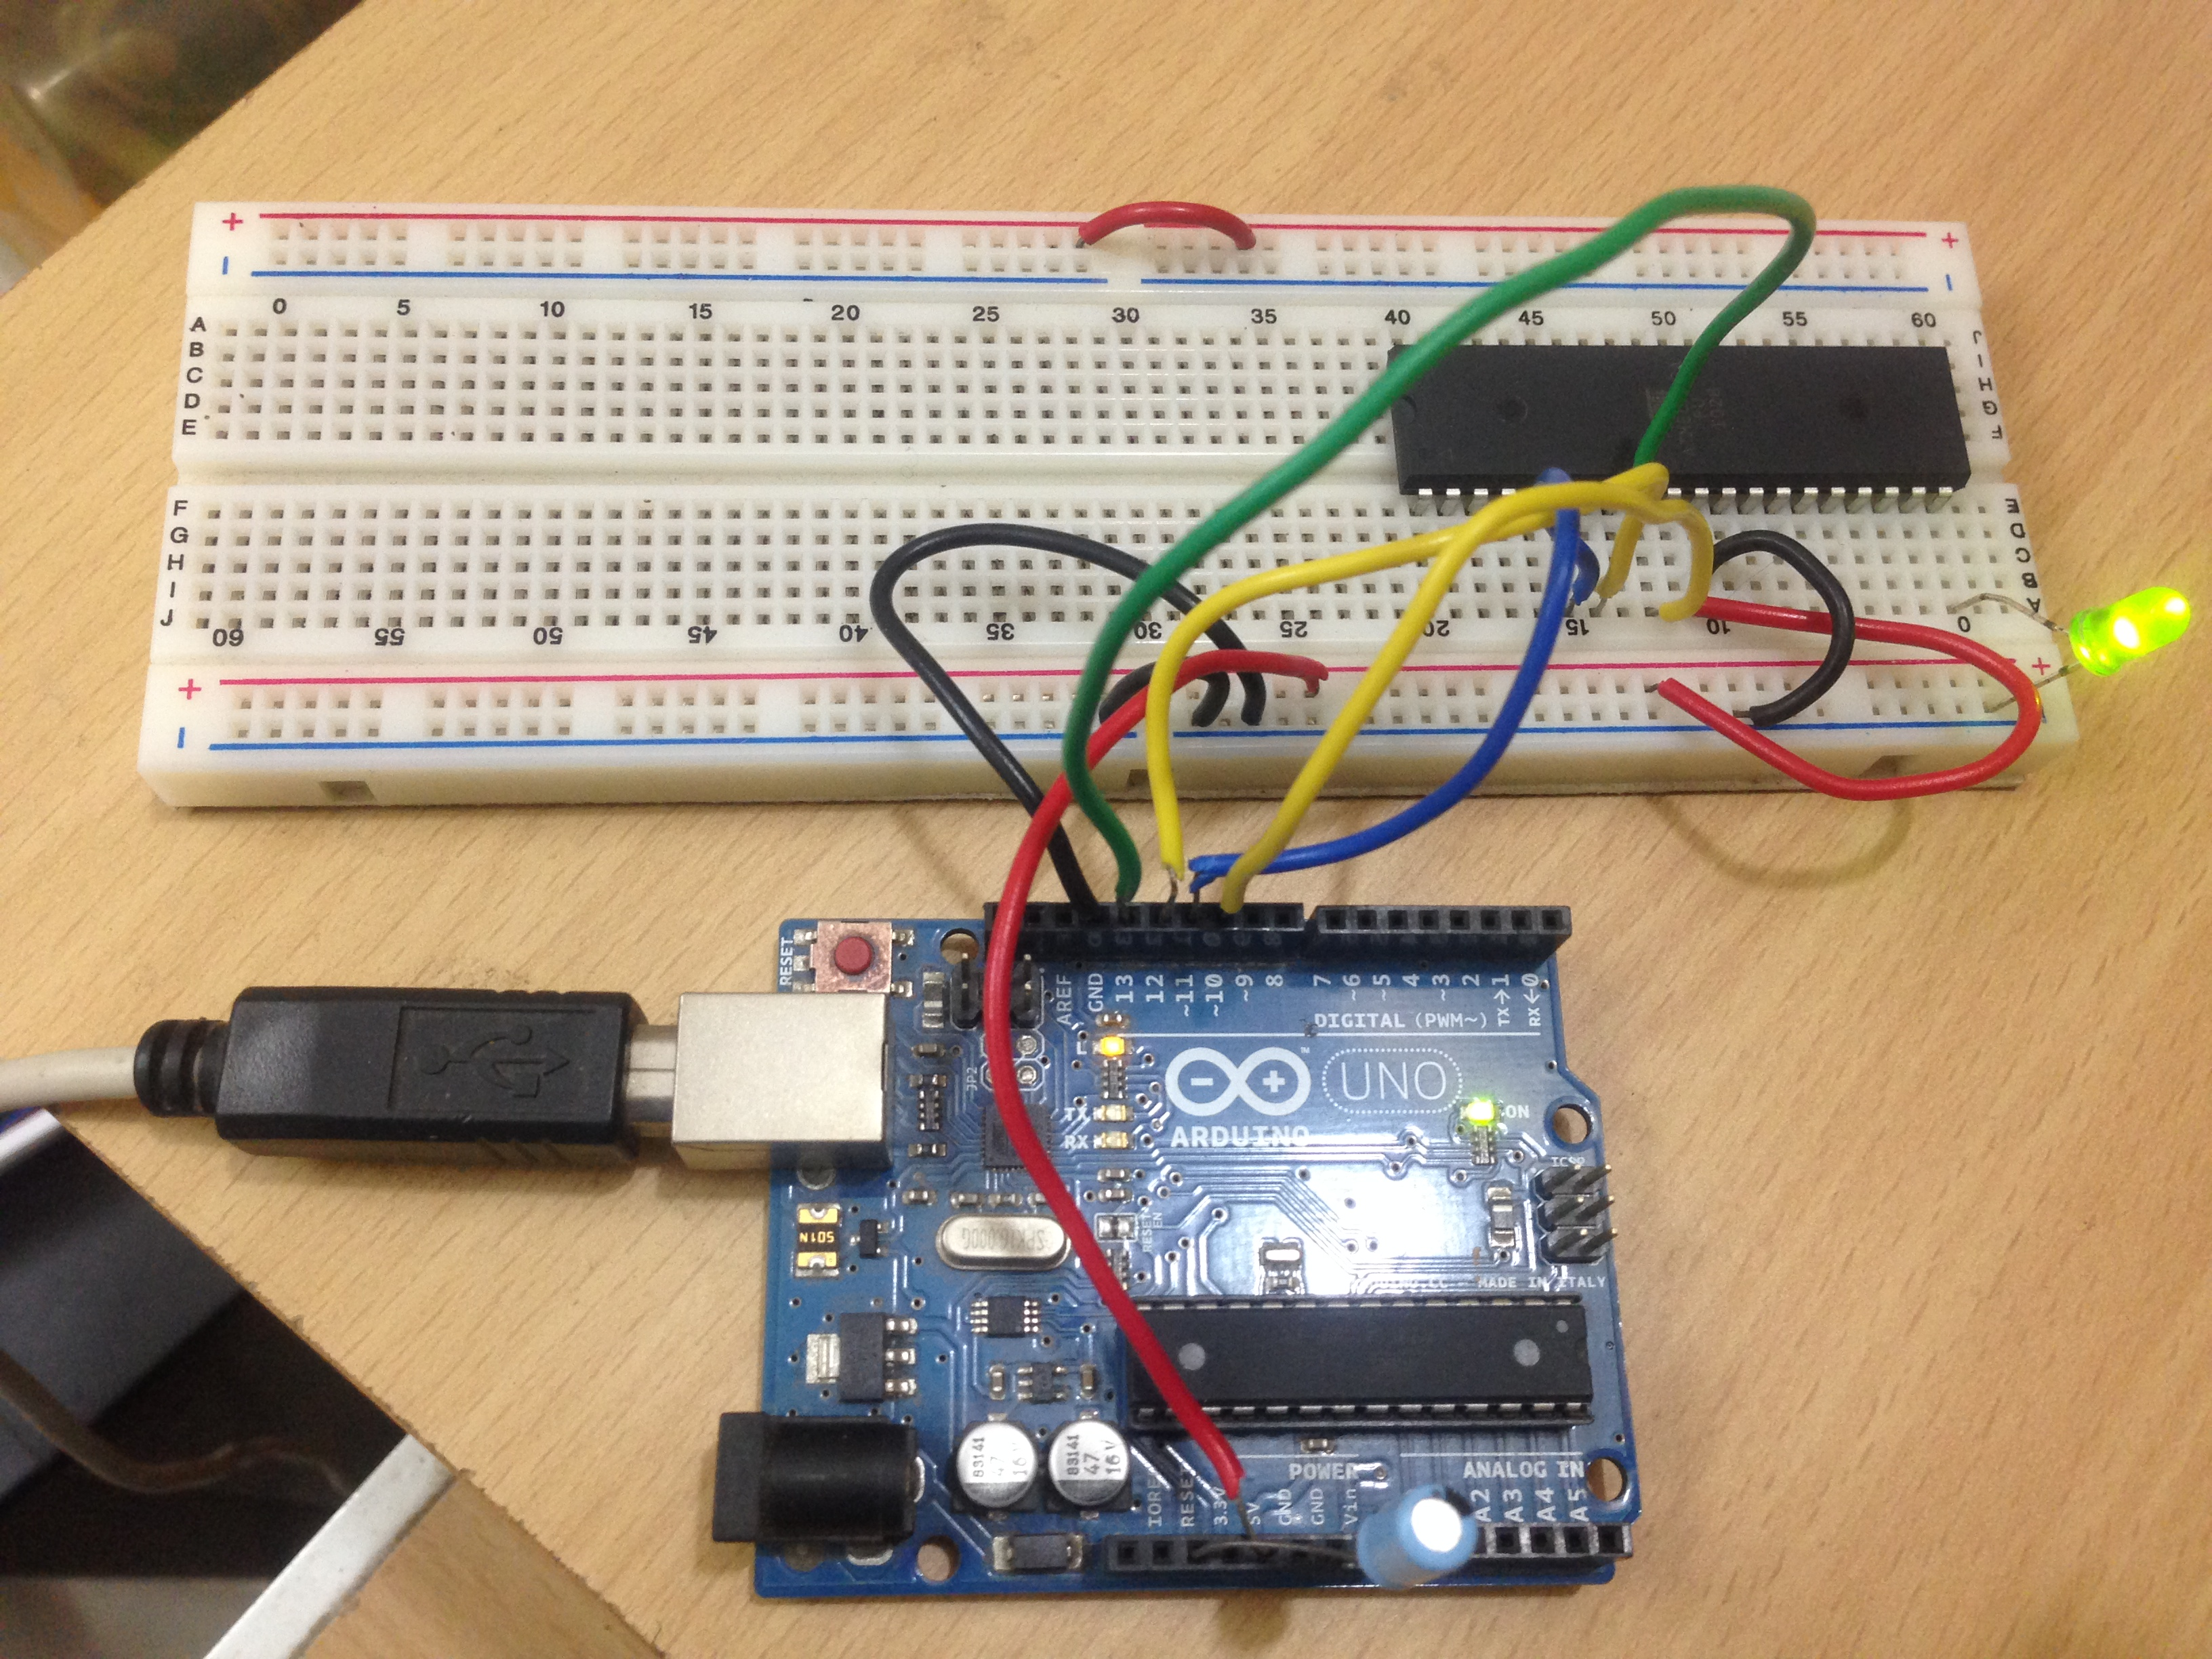 Use Arduino As An Isp Programmer To Program Non Avr In Sytem For Atmel Atmega 16 Using